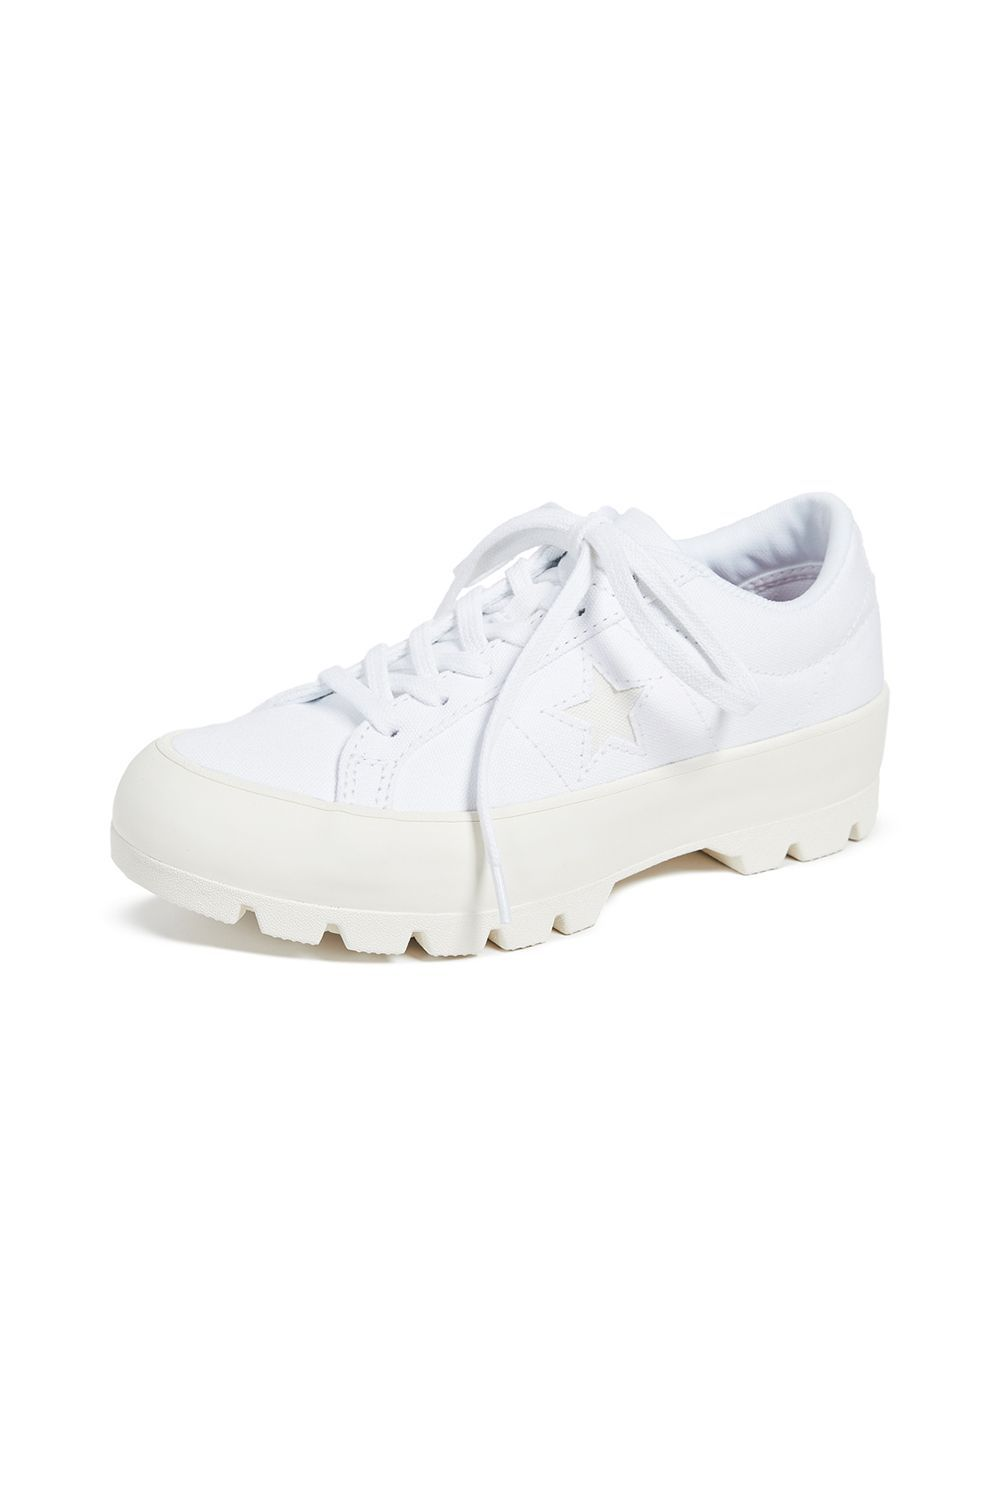 One Star Lugged Ox Sneakers Converse shopbop.com $85.00 SHOP IT Looking for sneakers to give you a boost in height? Try this slightly elevated pair from Converse.